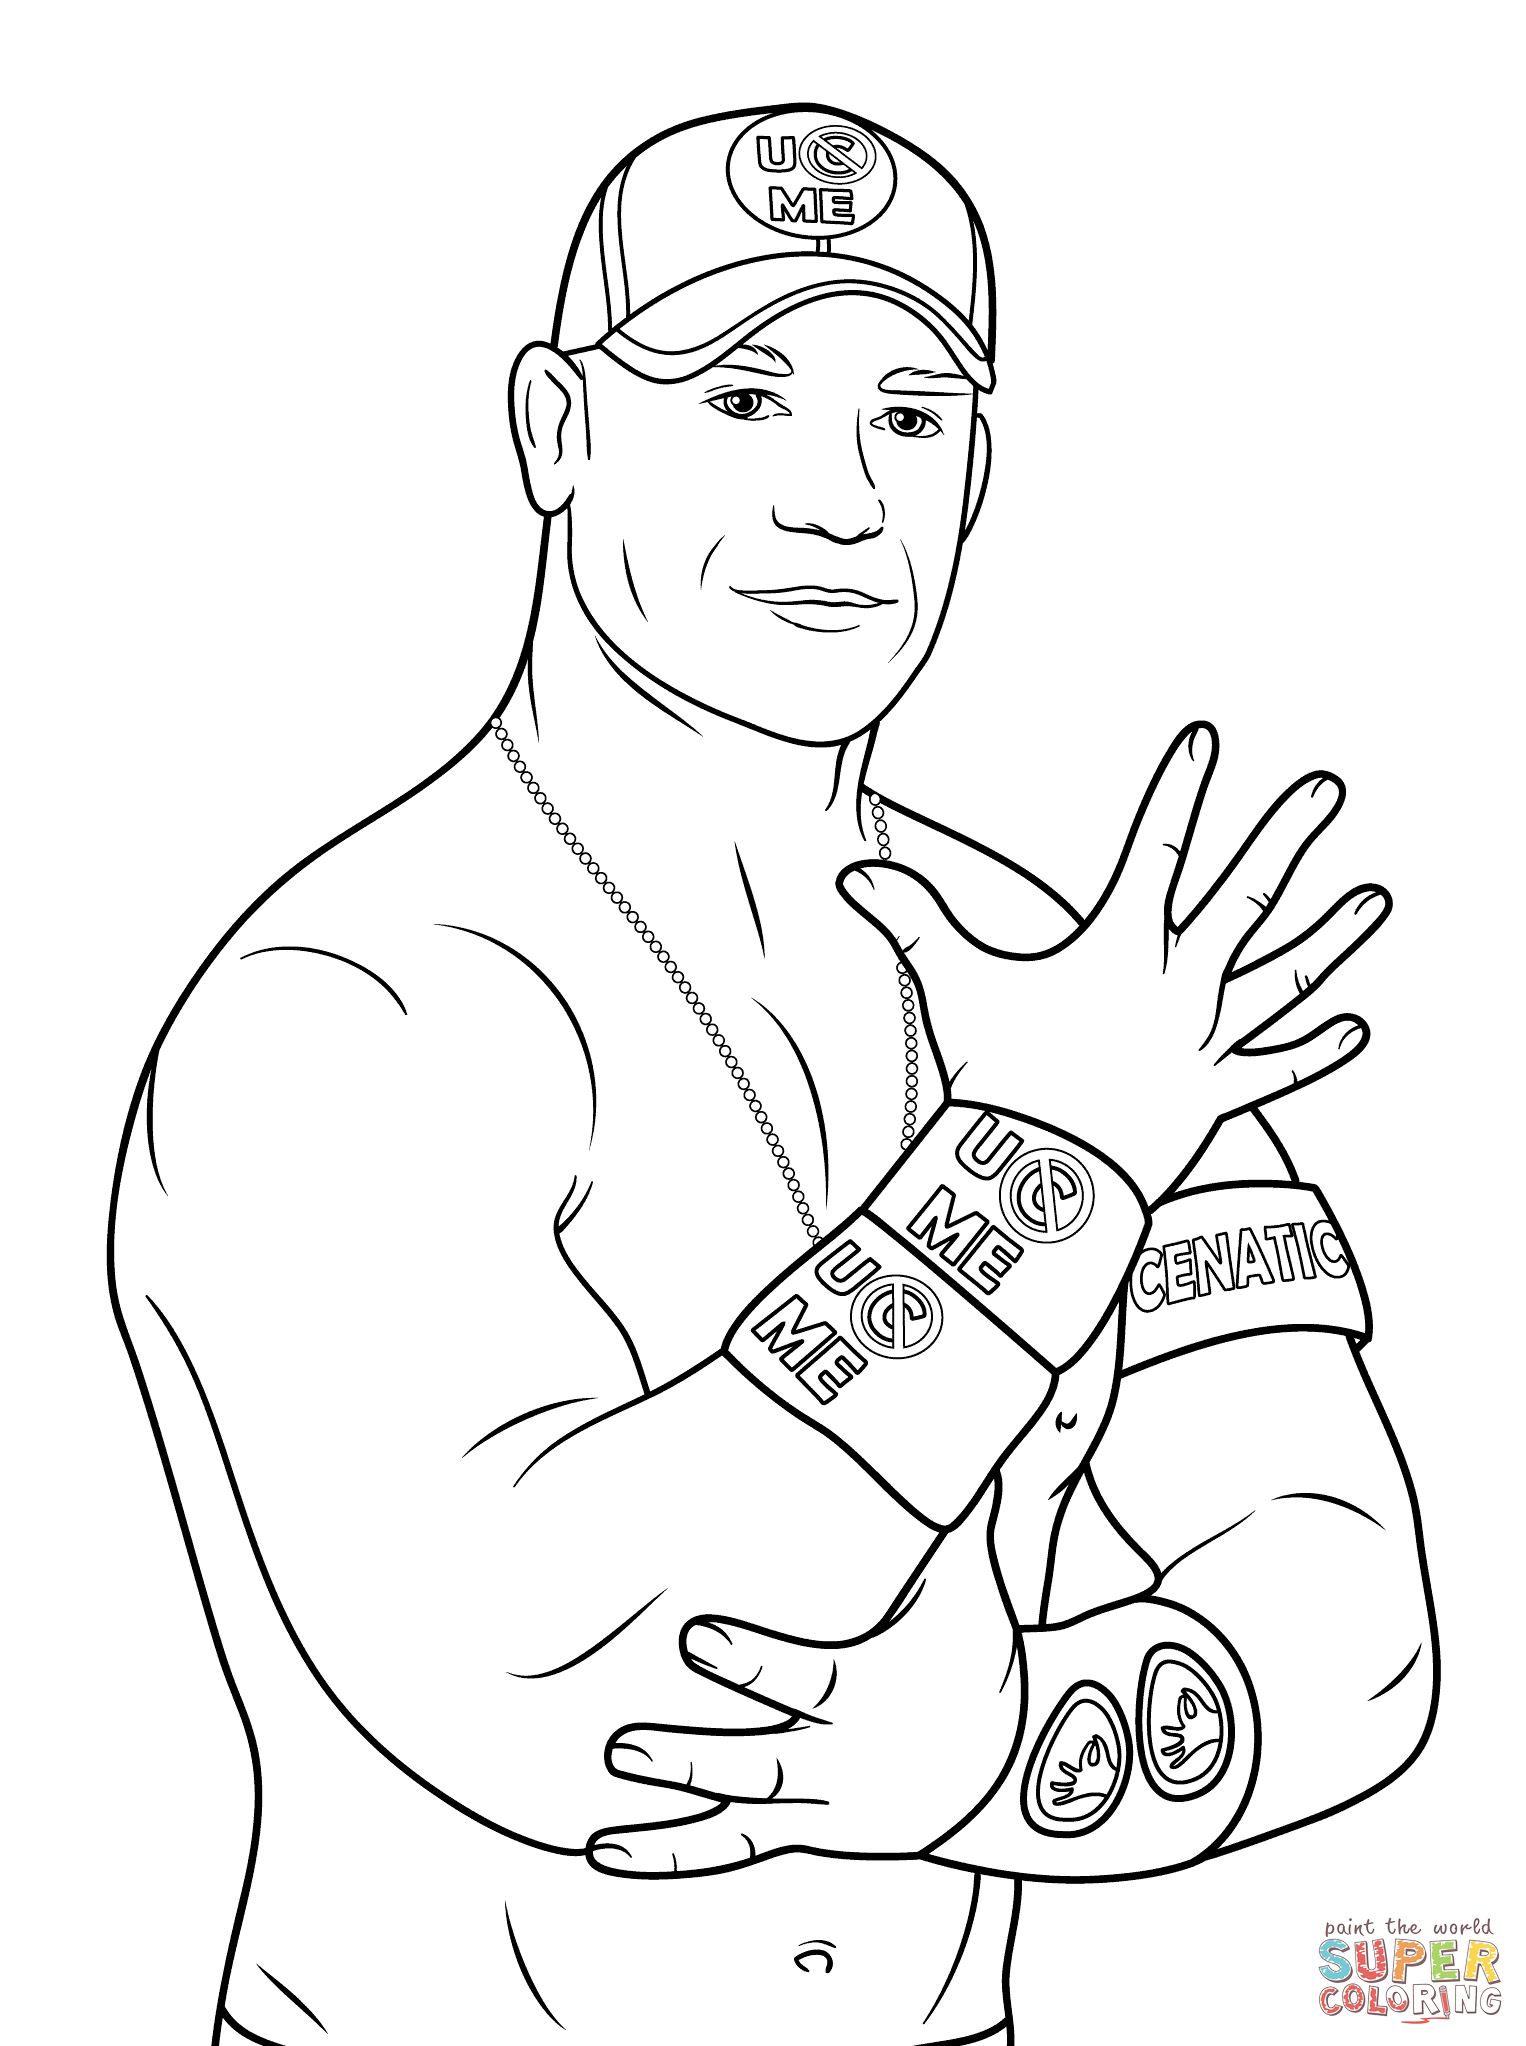 John Cena coloring page | Free Printable Coloring Pages